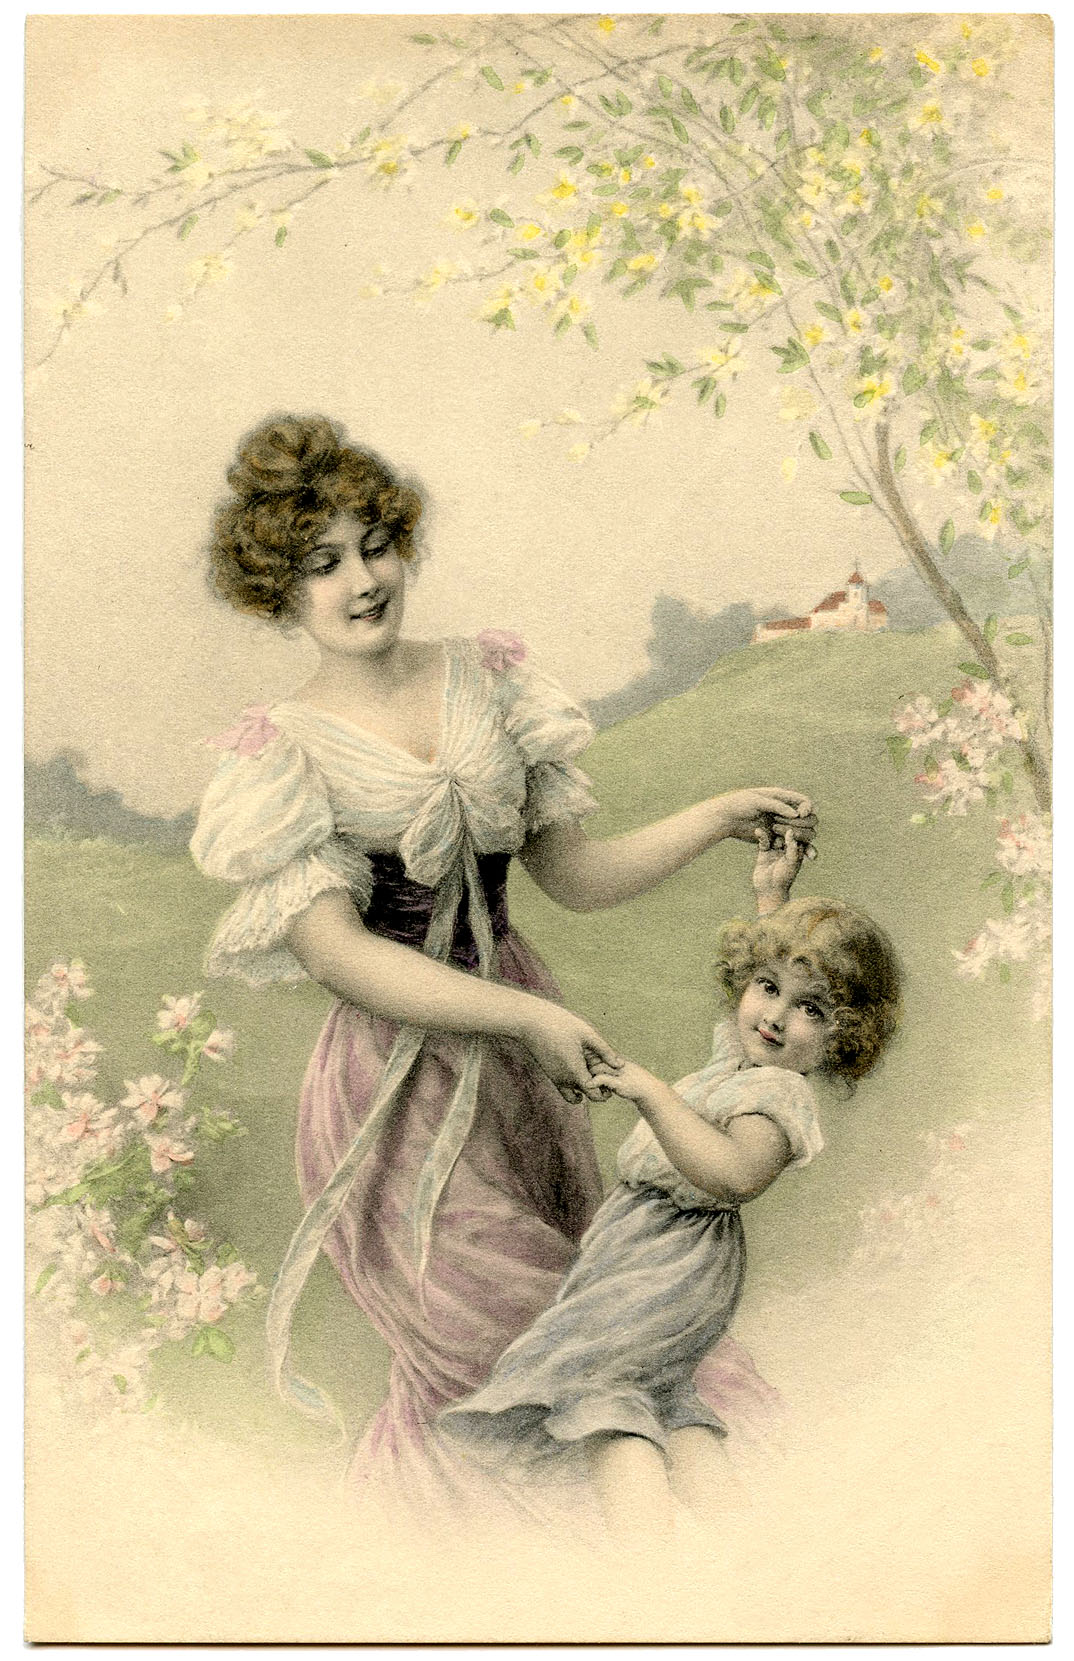 http://thegraphicsfairy.com/wp-content/uploads/2013/06/Vintage-Mother-Child-Image-GraphicsFairy.jpg